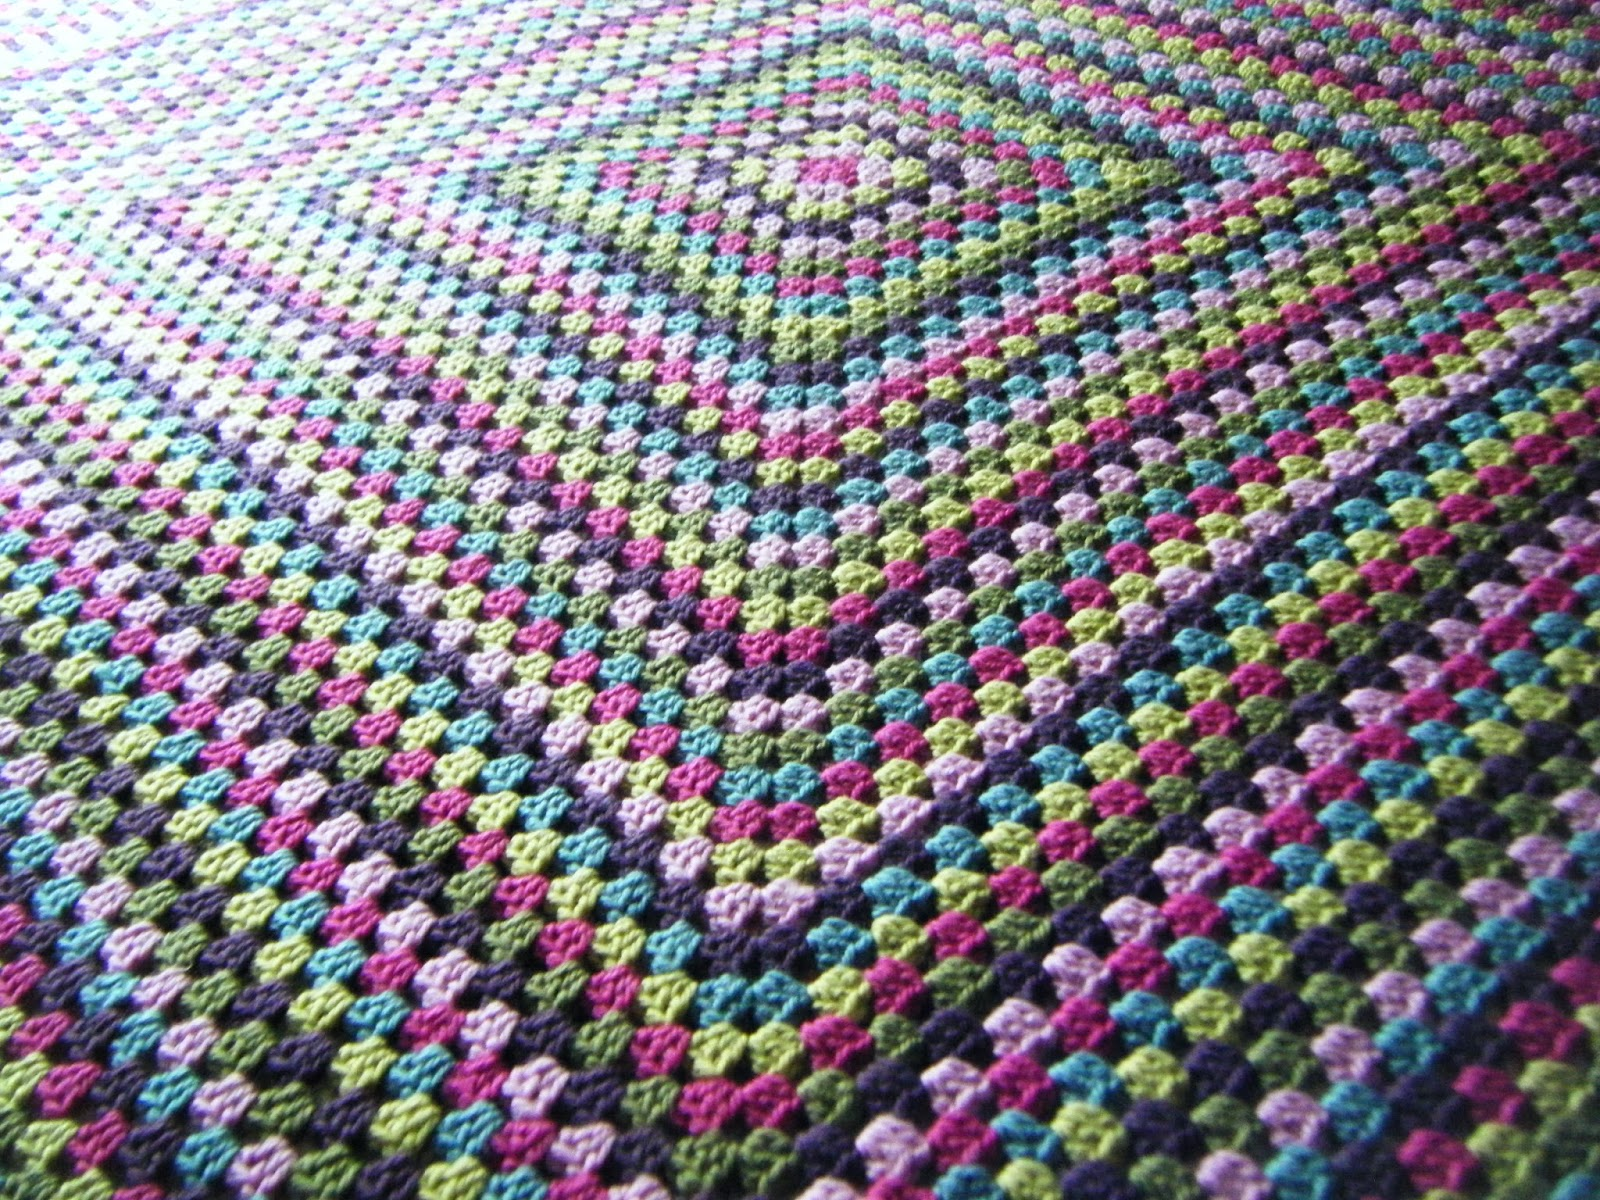 Free Crochet Pattern For Giant Granny Square Afghan : Betsy Makes ....: Giant Granny Square for our Sofa